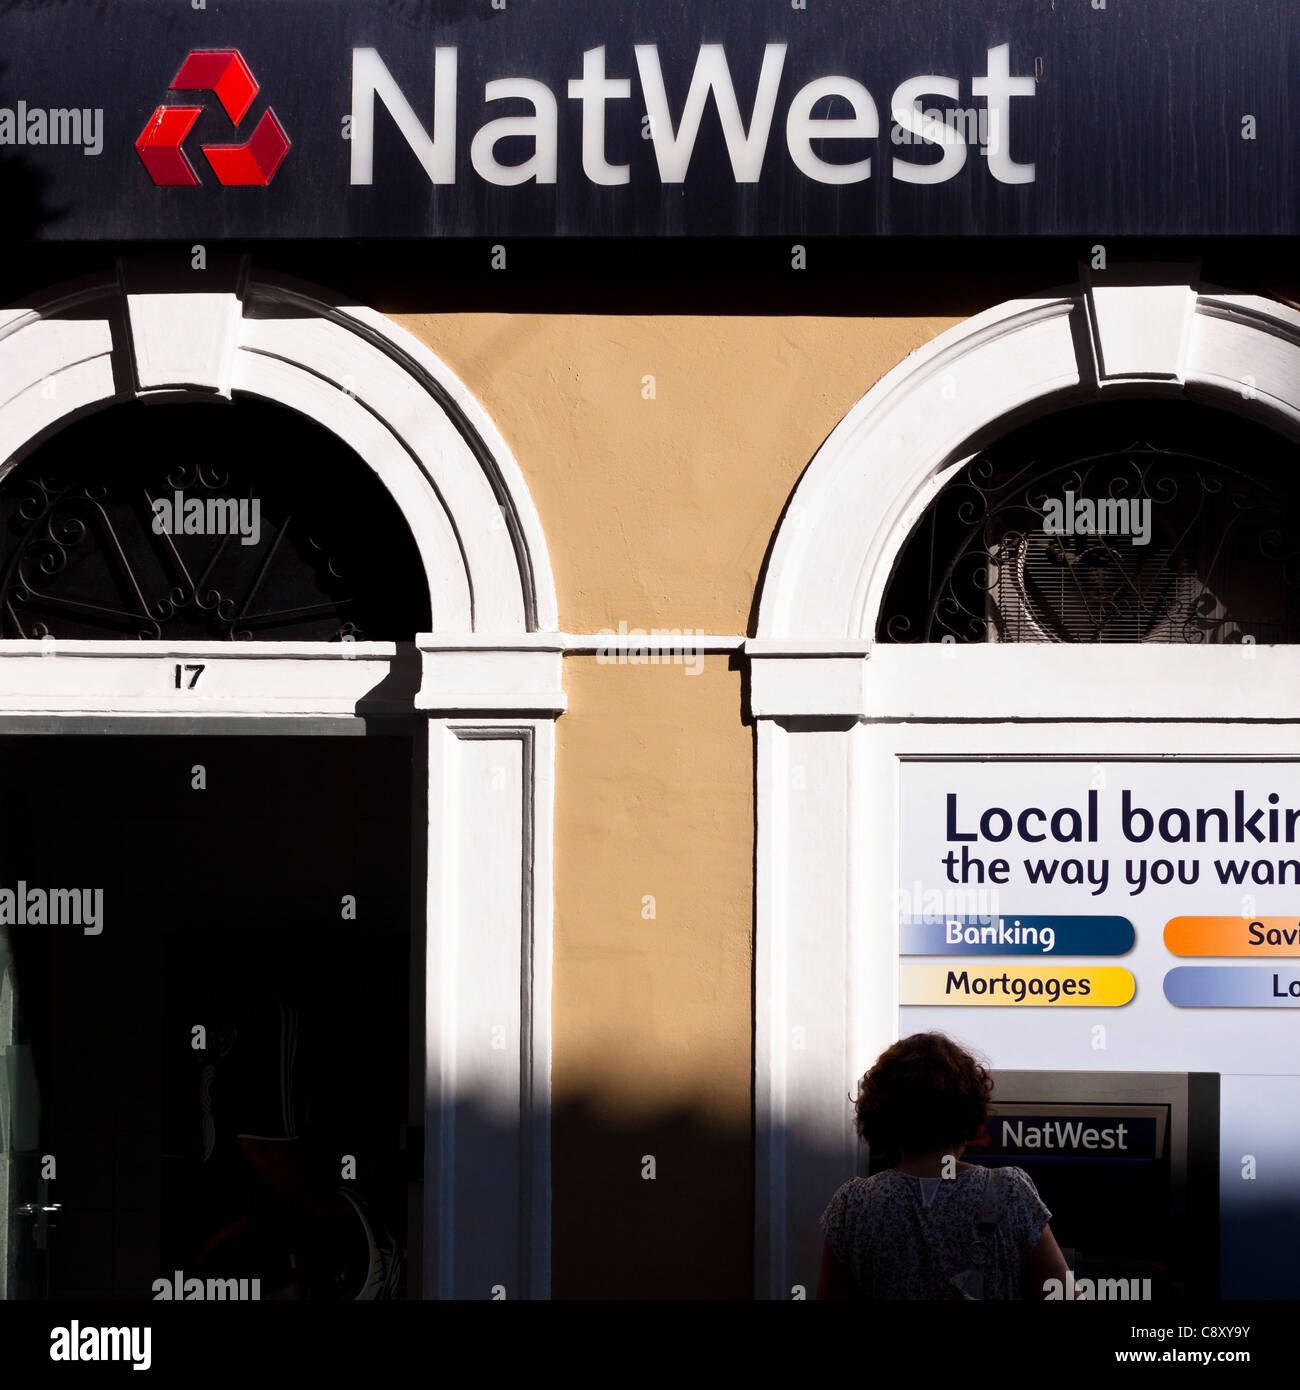 Natwest Online Personal Banking